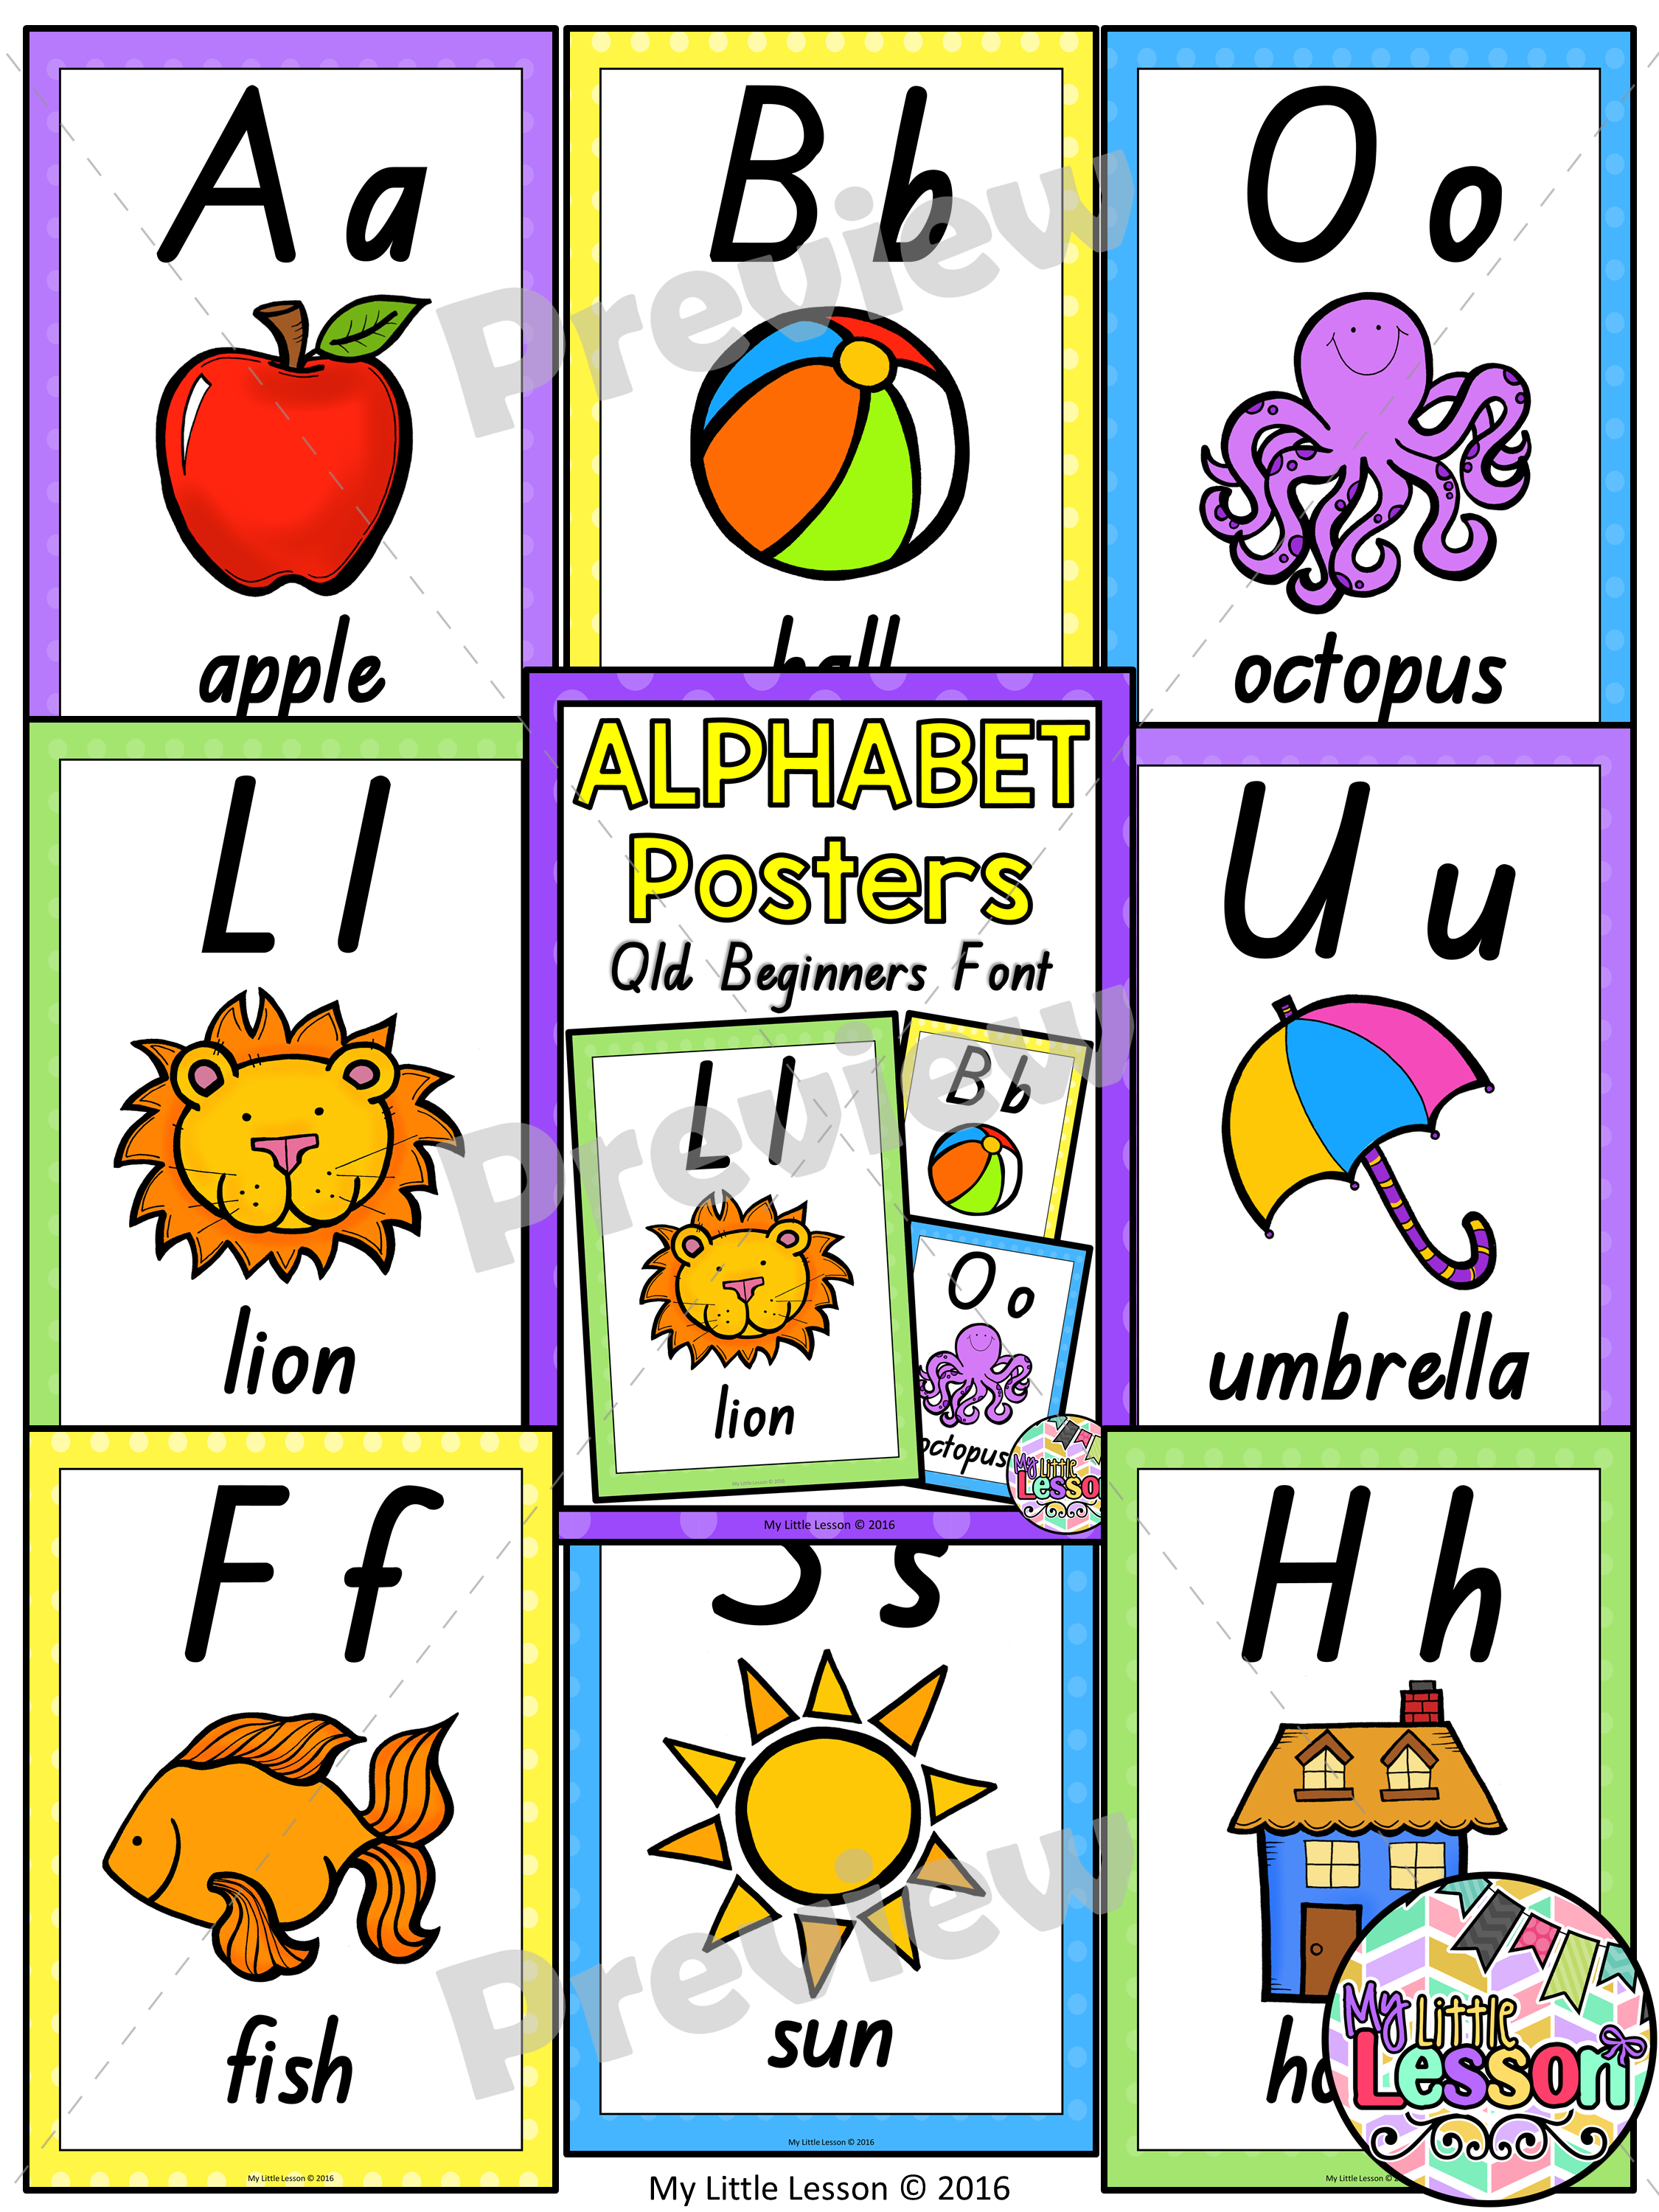 Alphabet Posters Qld Beginners Font